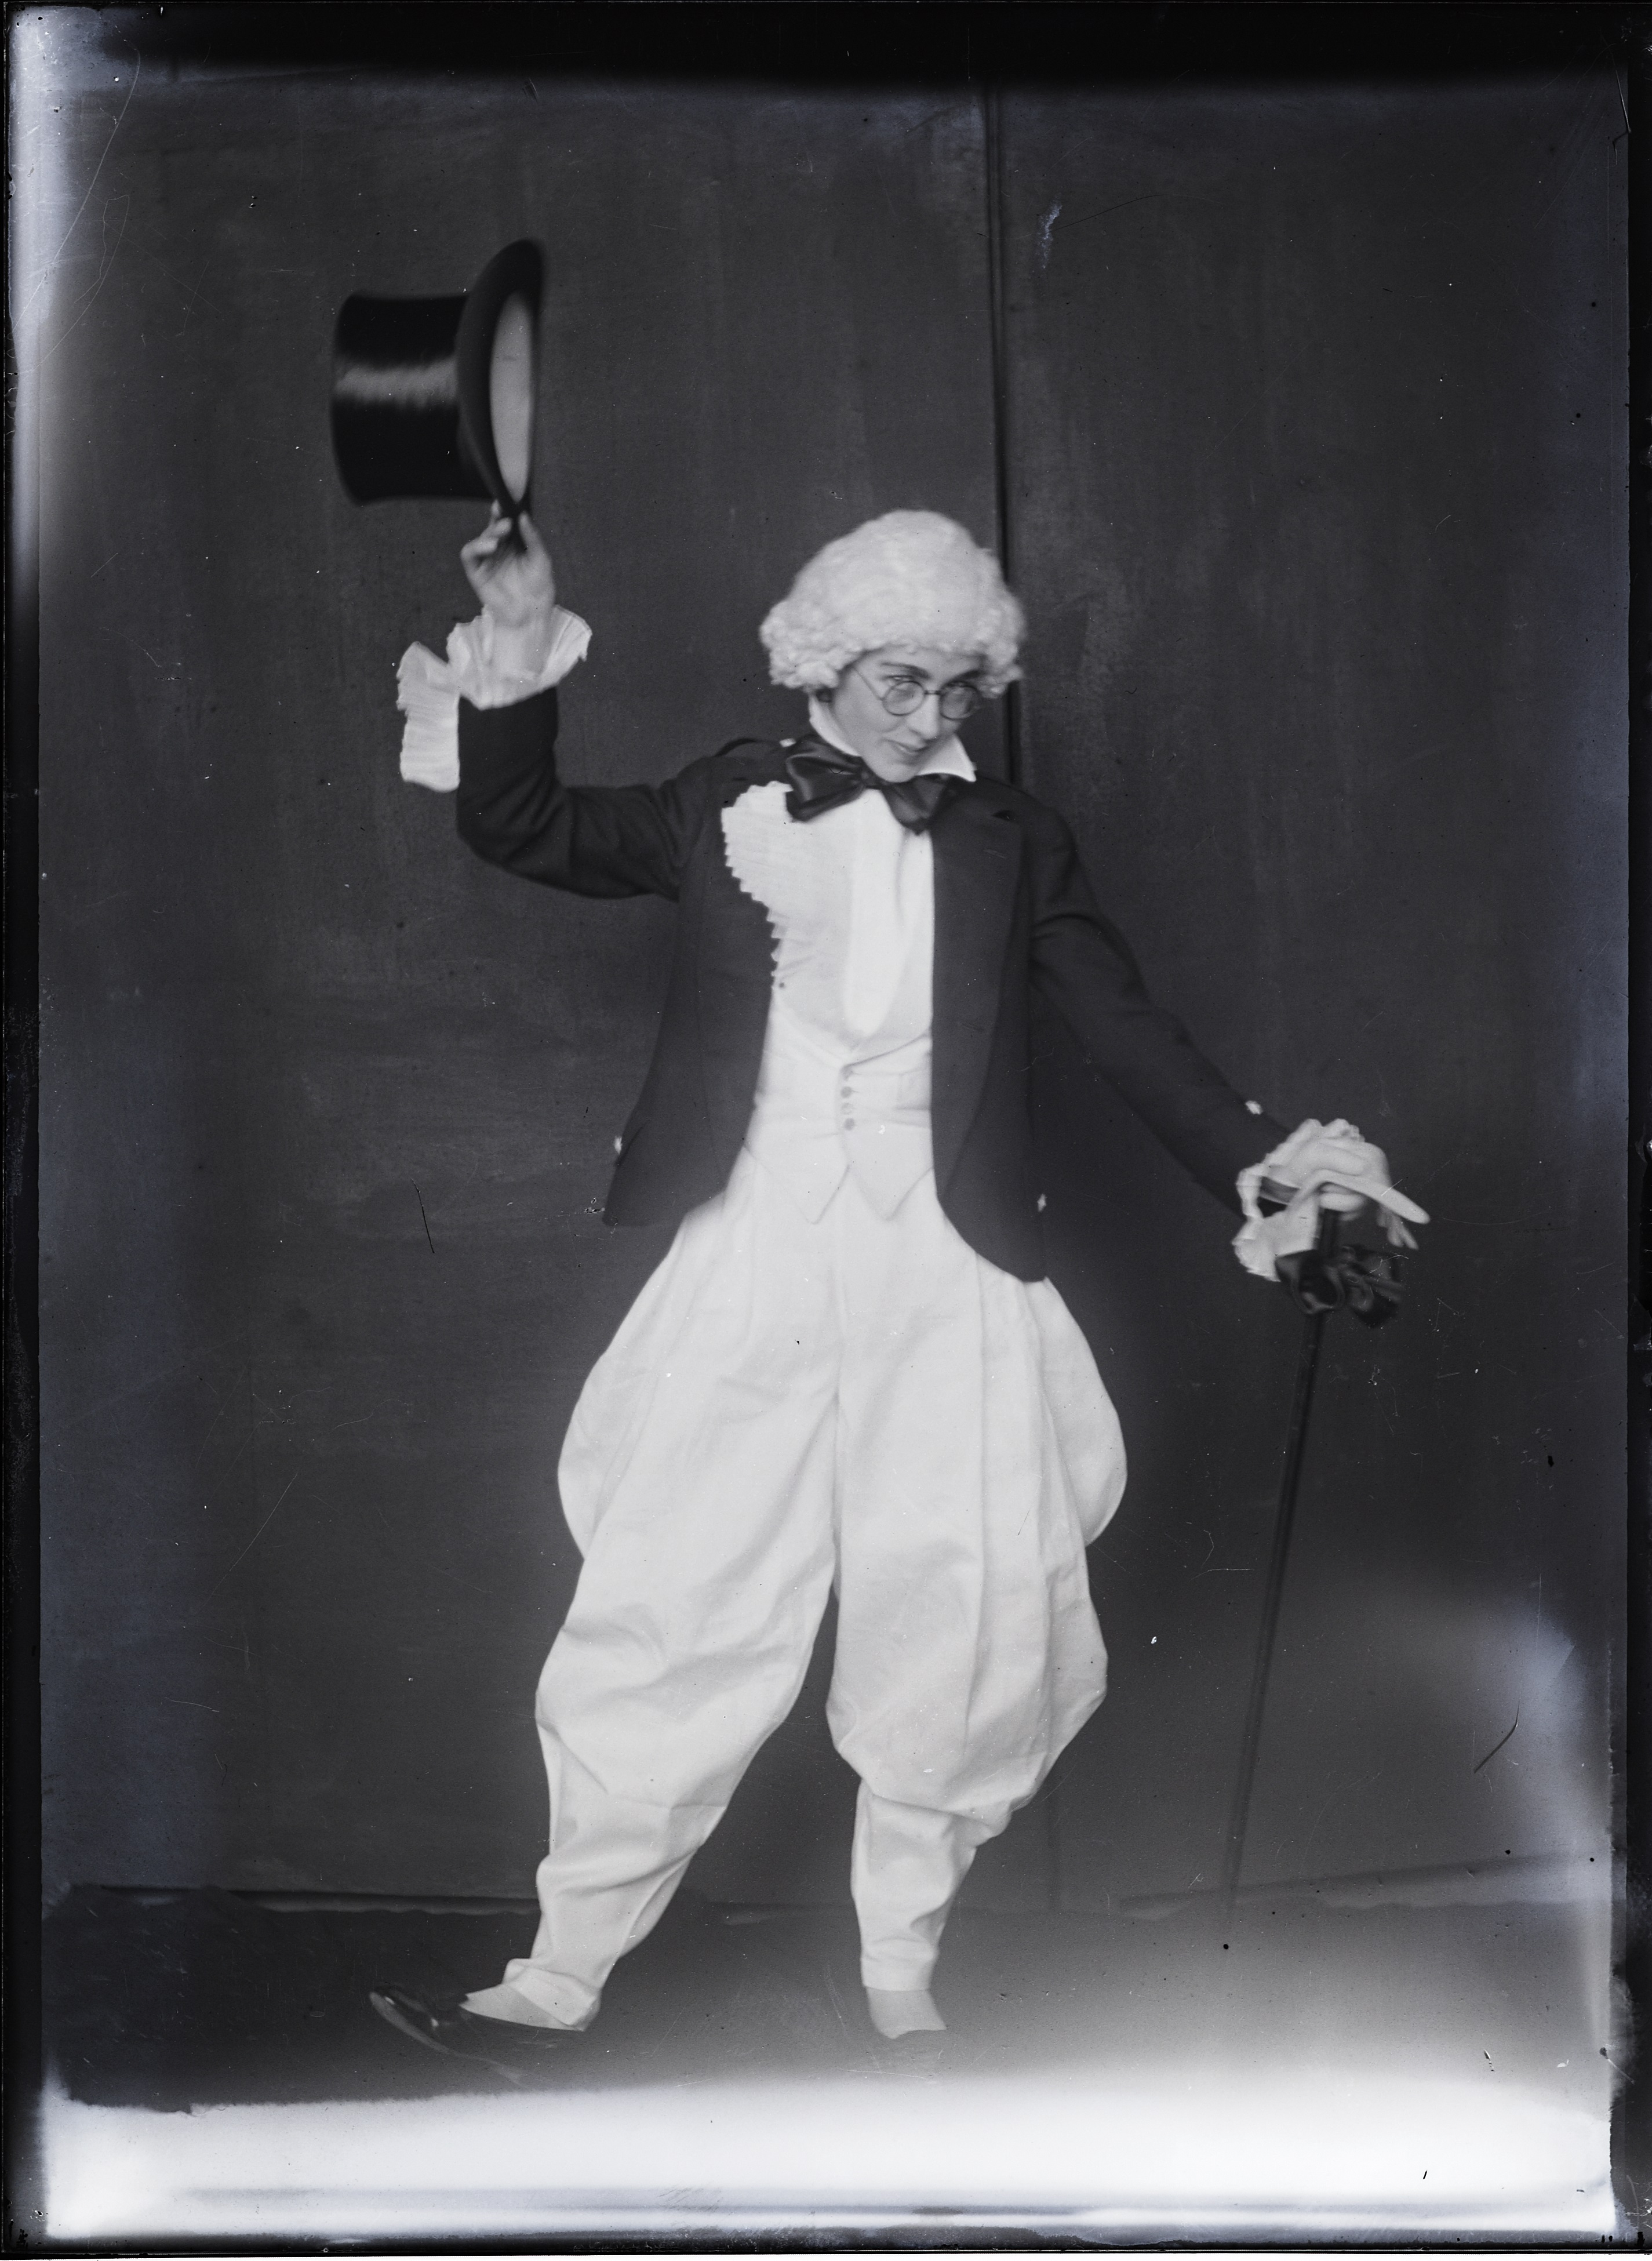 GSA student in costume, early 1900s